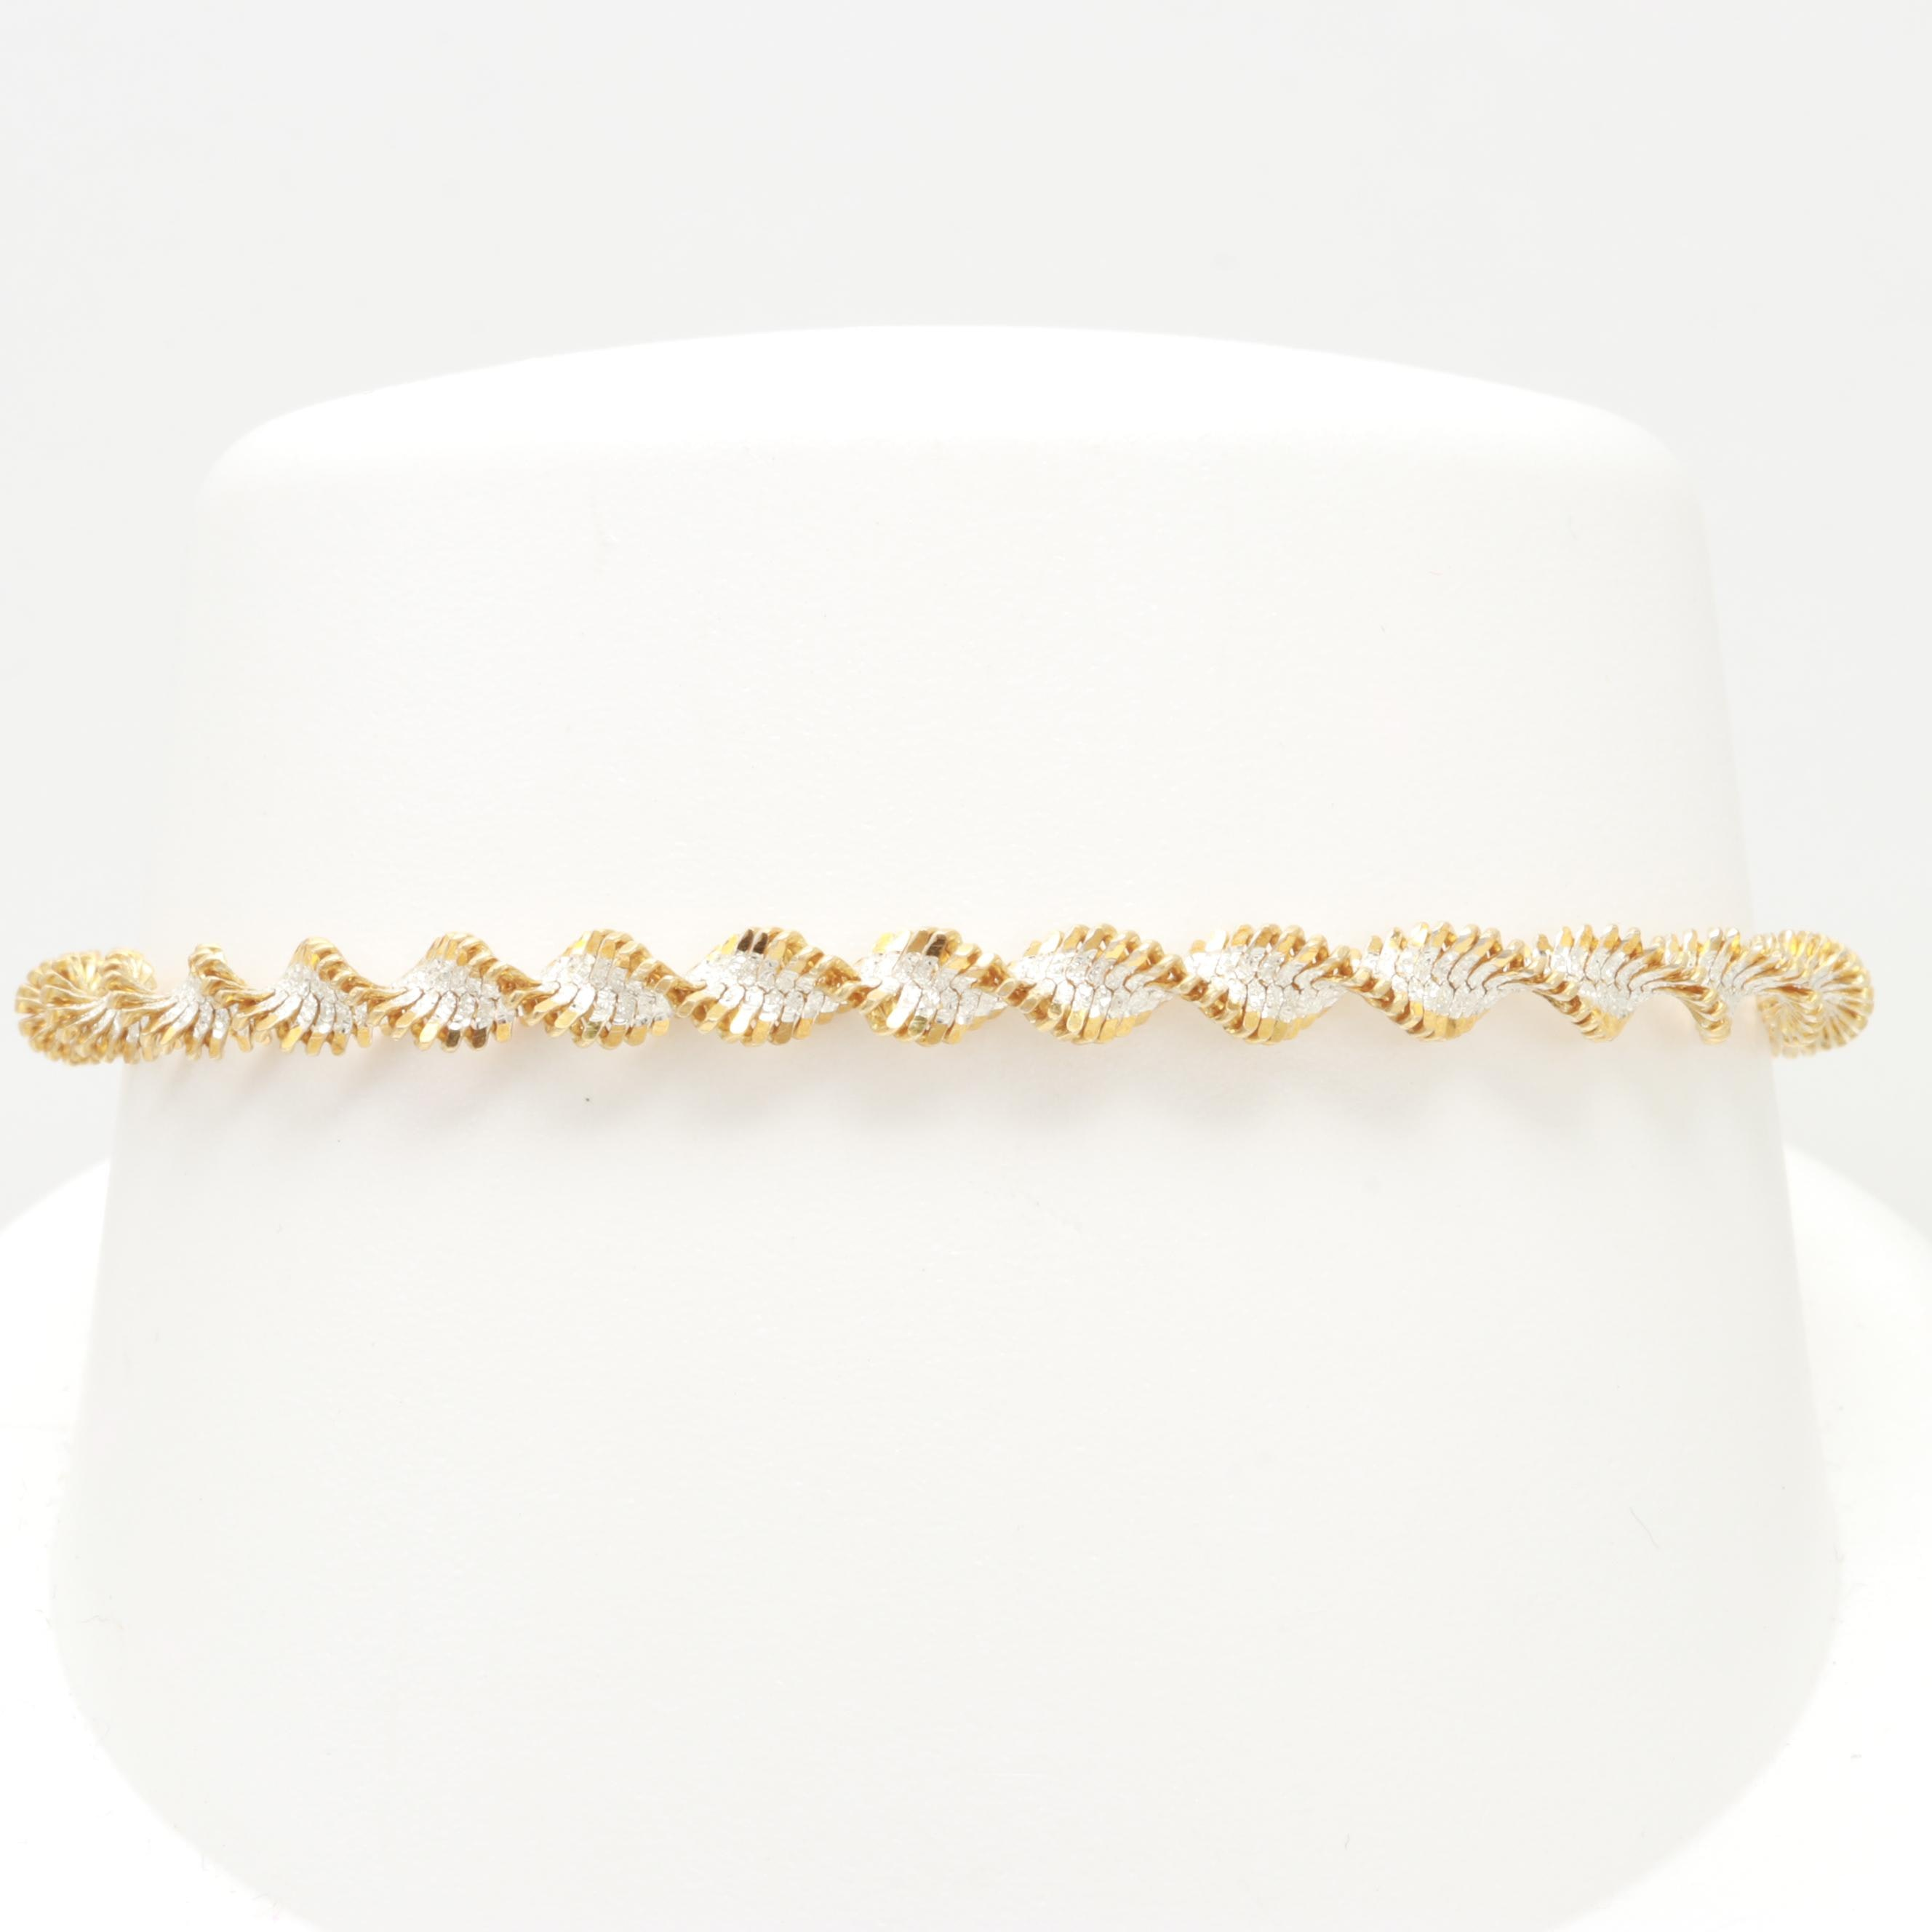 Sterling Silver Twisted Herringbone Bracelet with Gold Wash on Sterling Accents